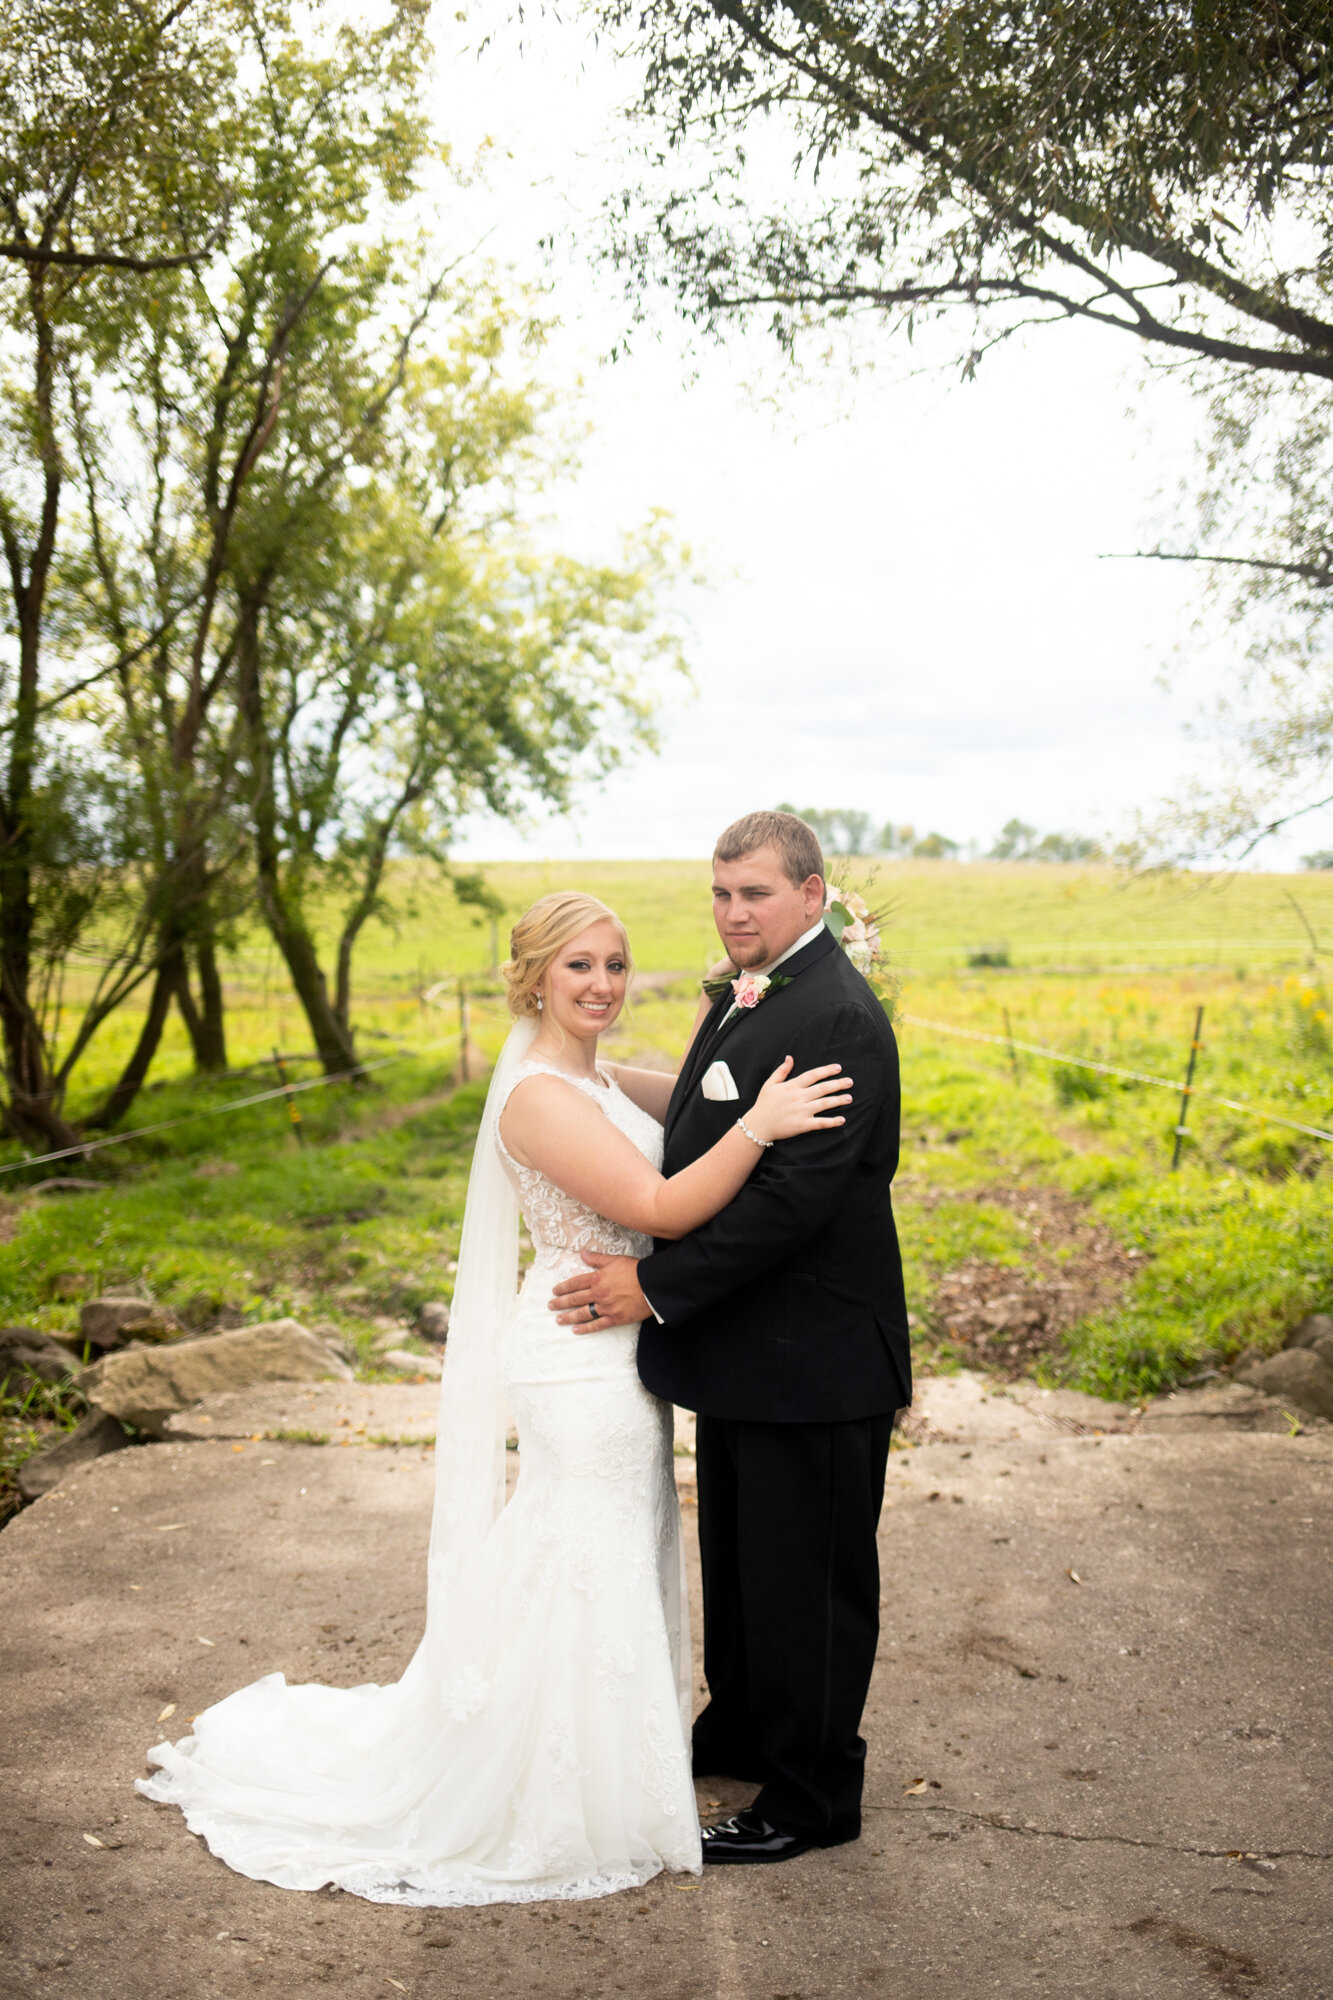 Rustic Hometown Wedding at Cobblestone Creek in Brillion, Wisconsin - Whit Meza Photography